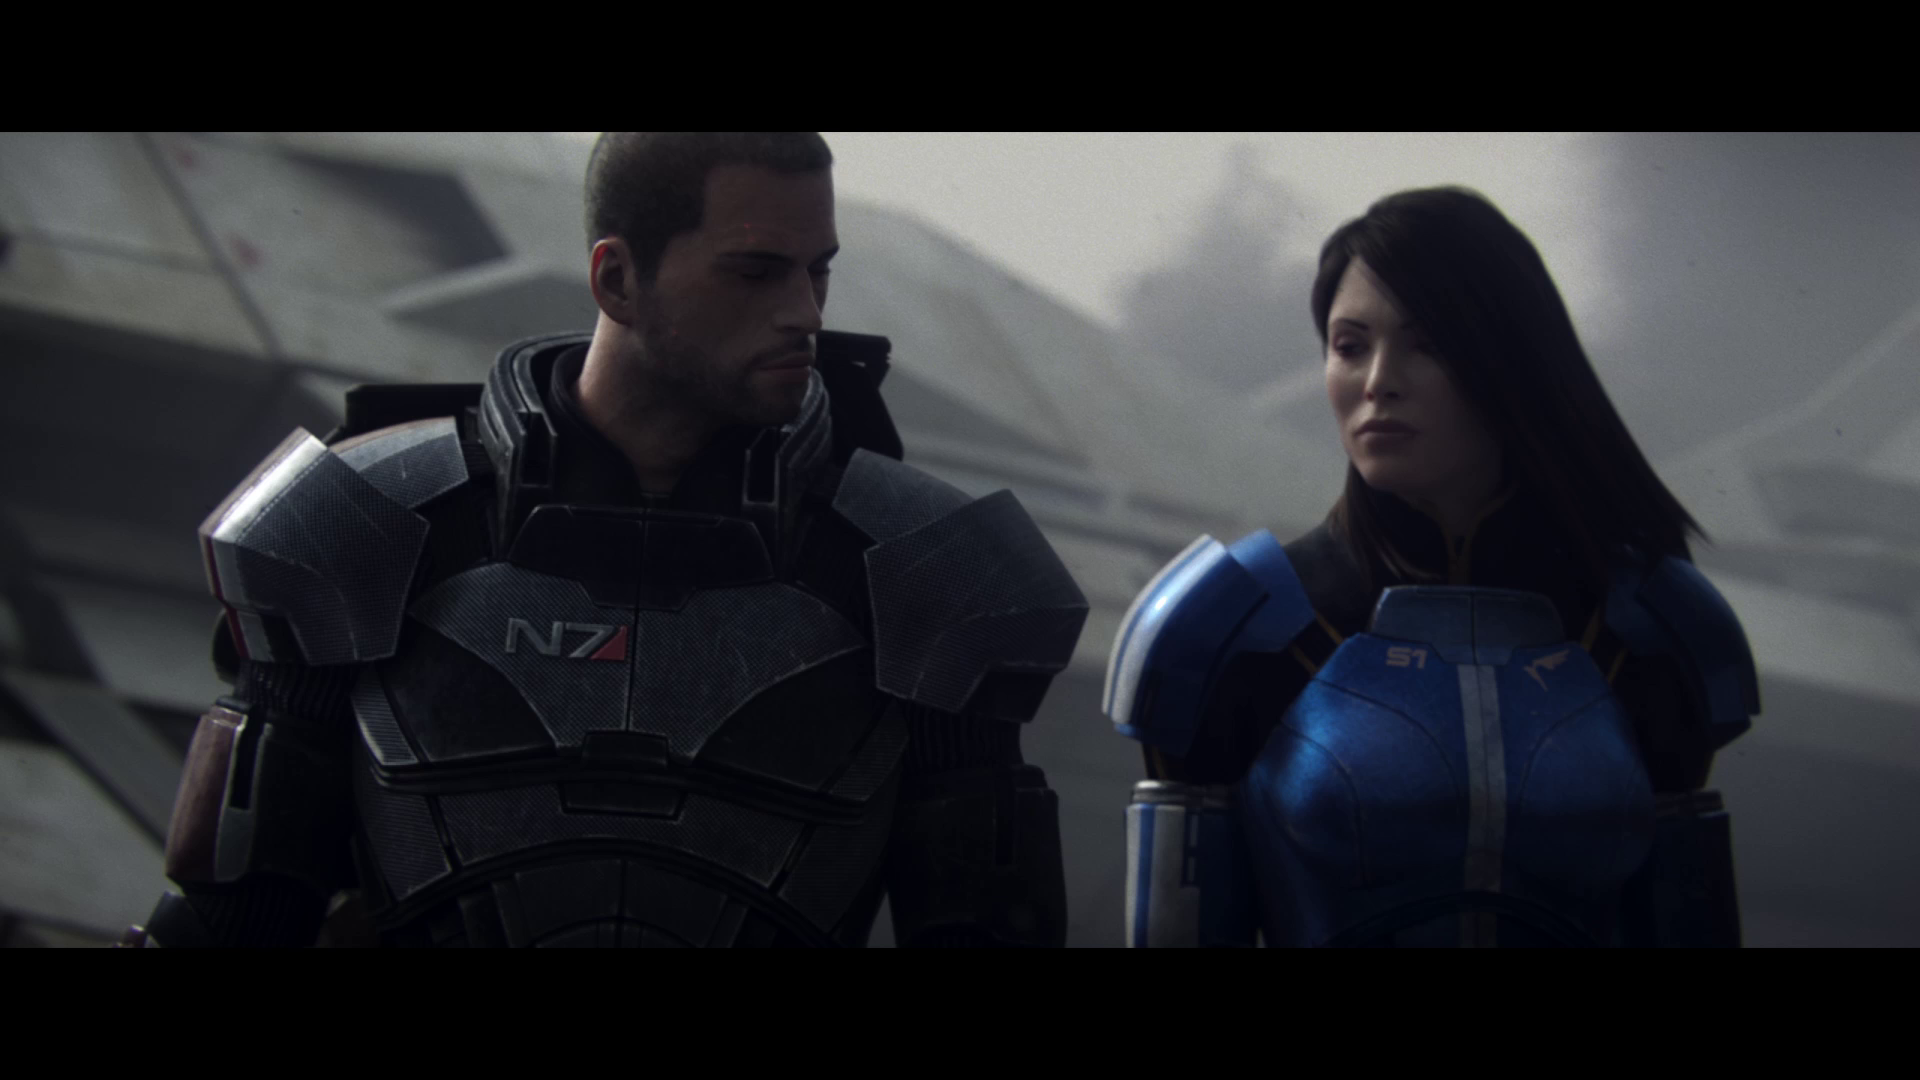 Mass Effect 3 'Take Earth Back' Trailer